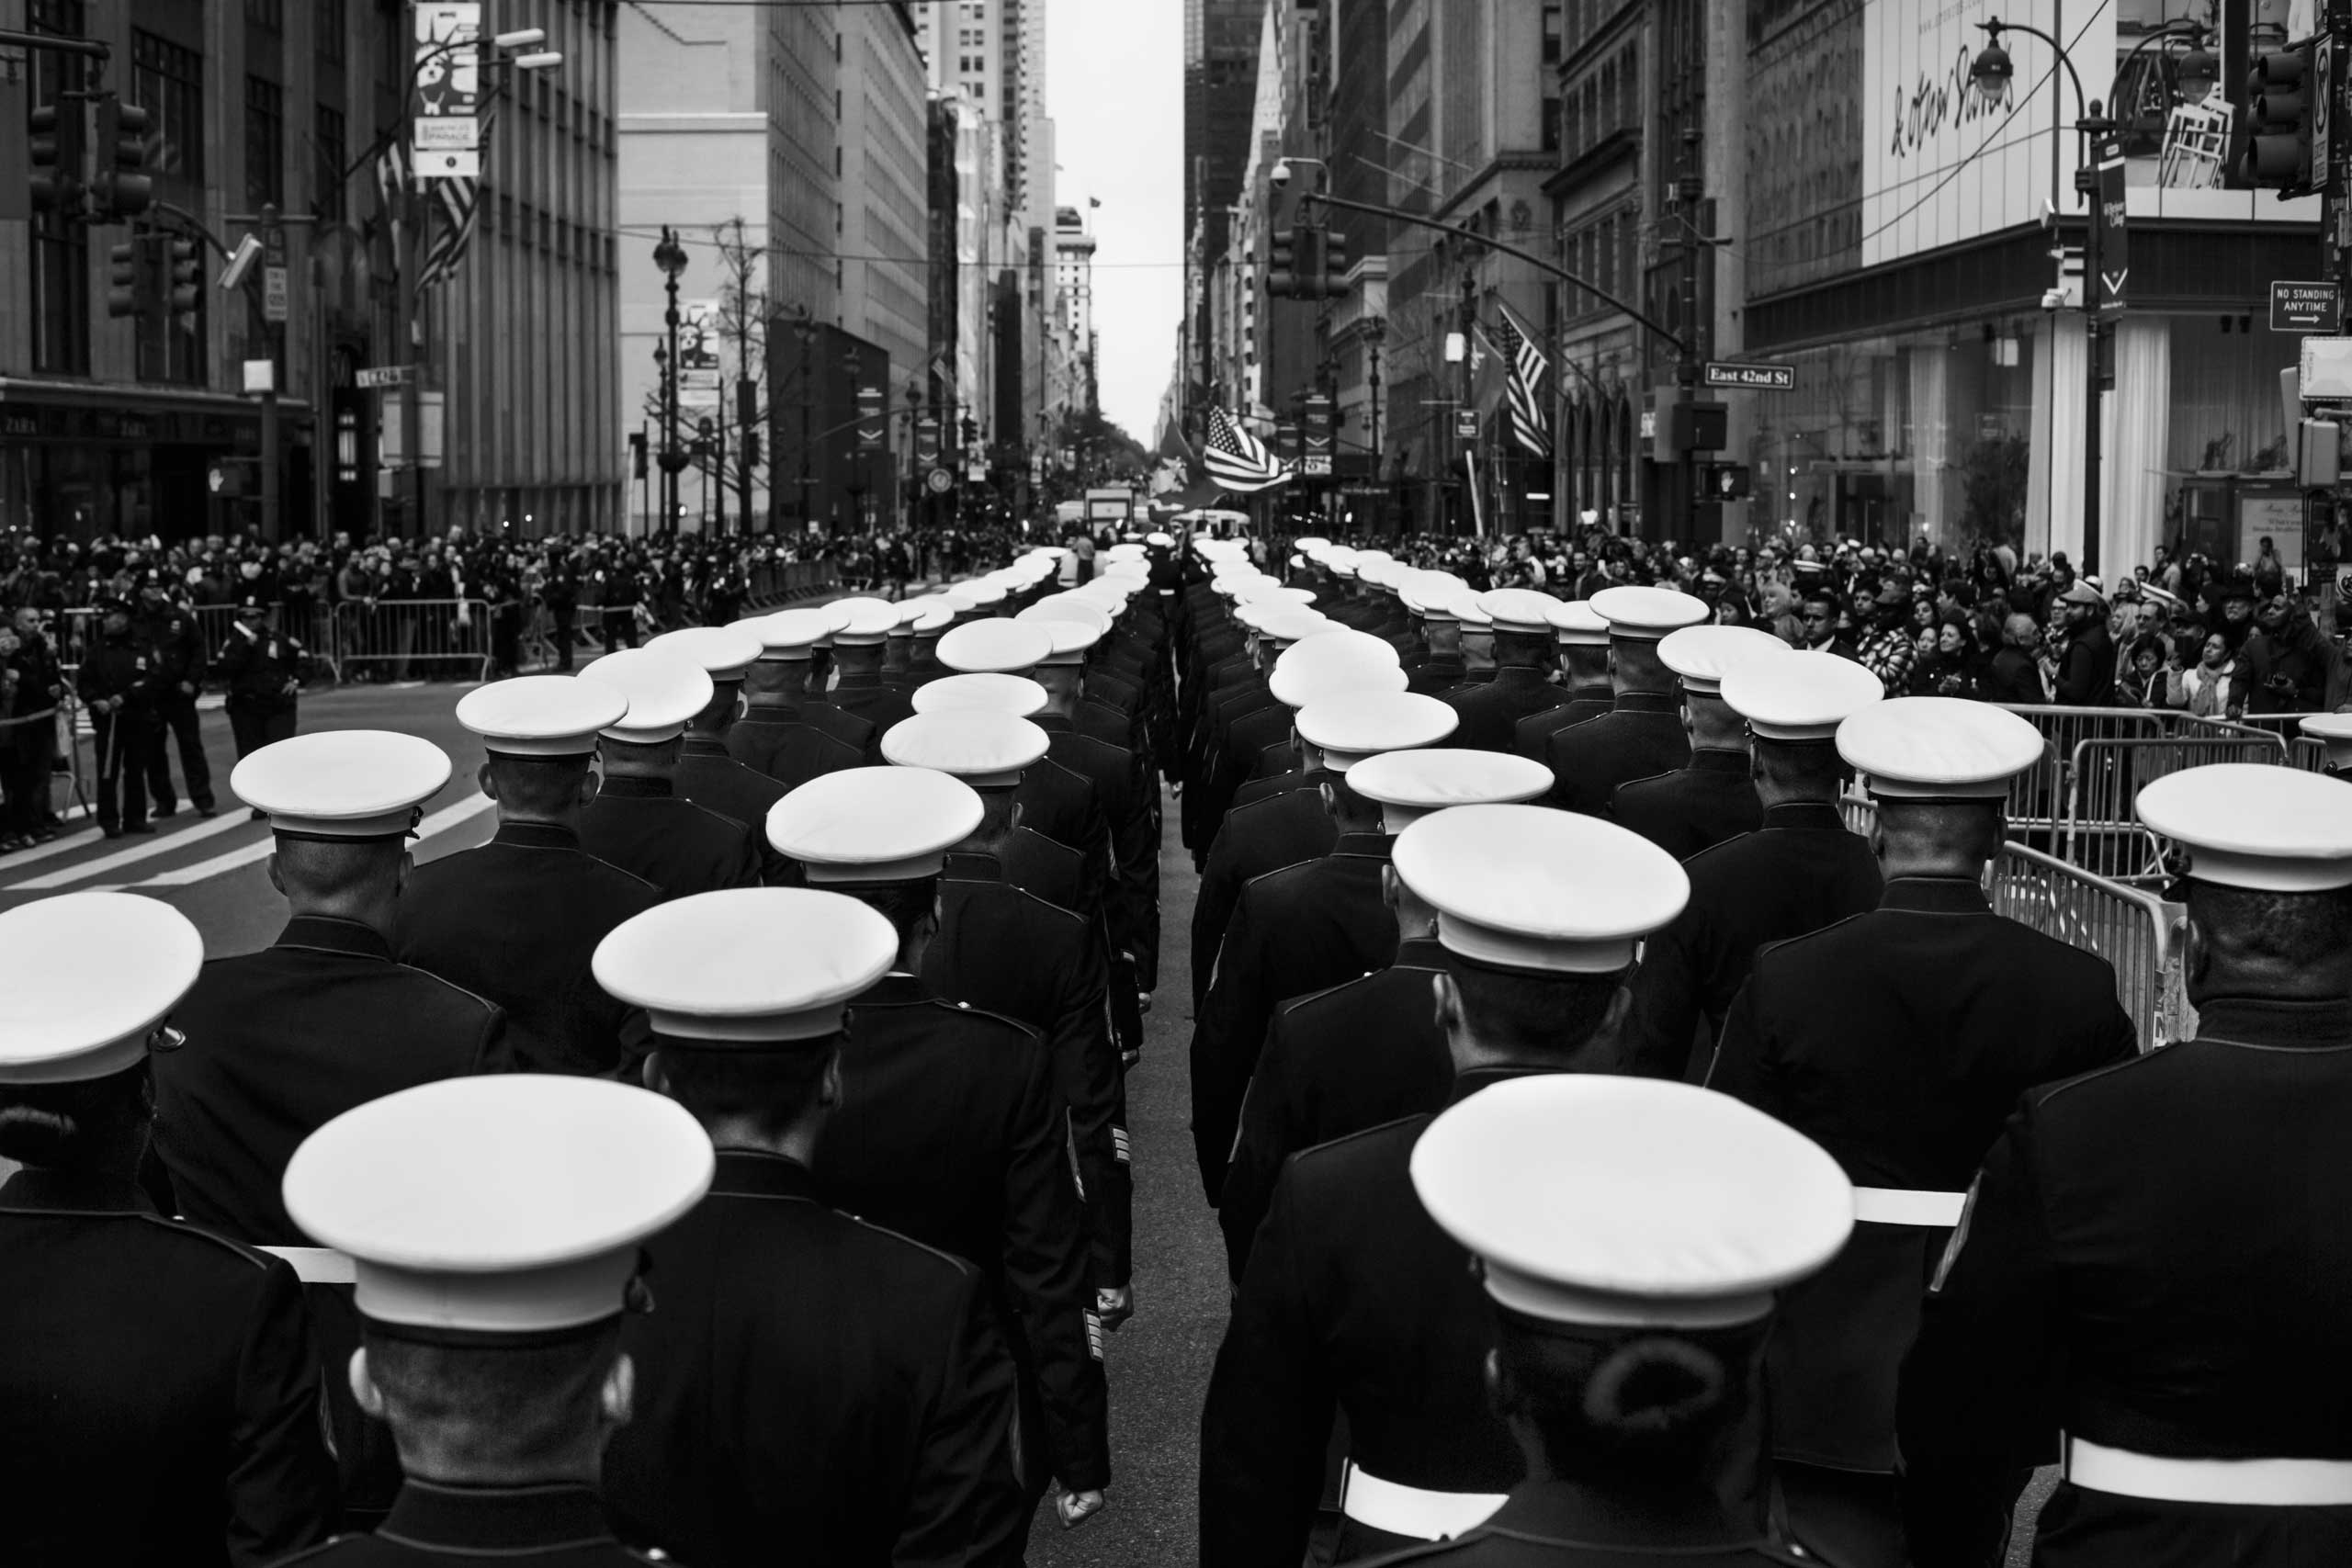 November 11, 2015 - New York, New York: Participants lining up on 5th Avenue and 42nd Street for the Veterans Day parade.